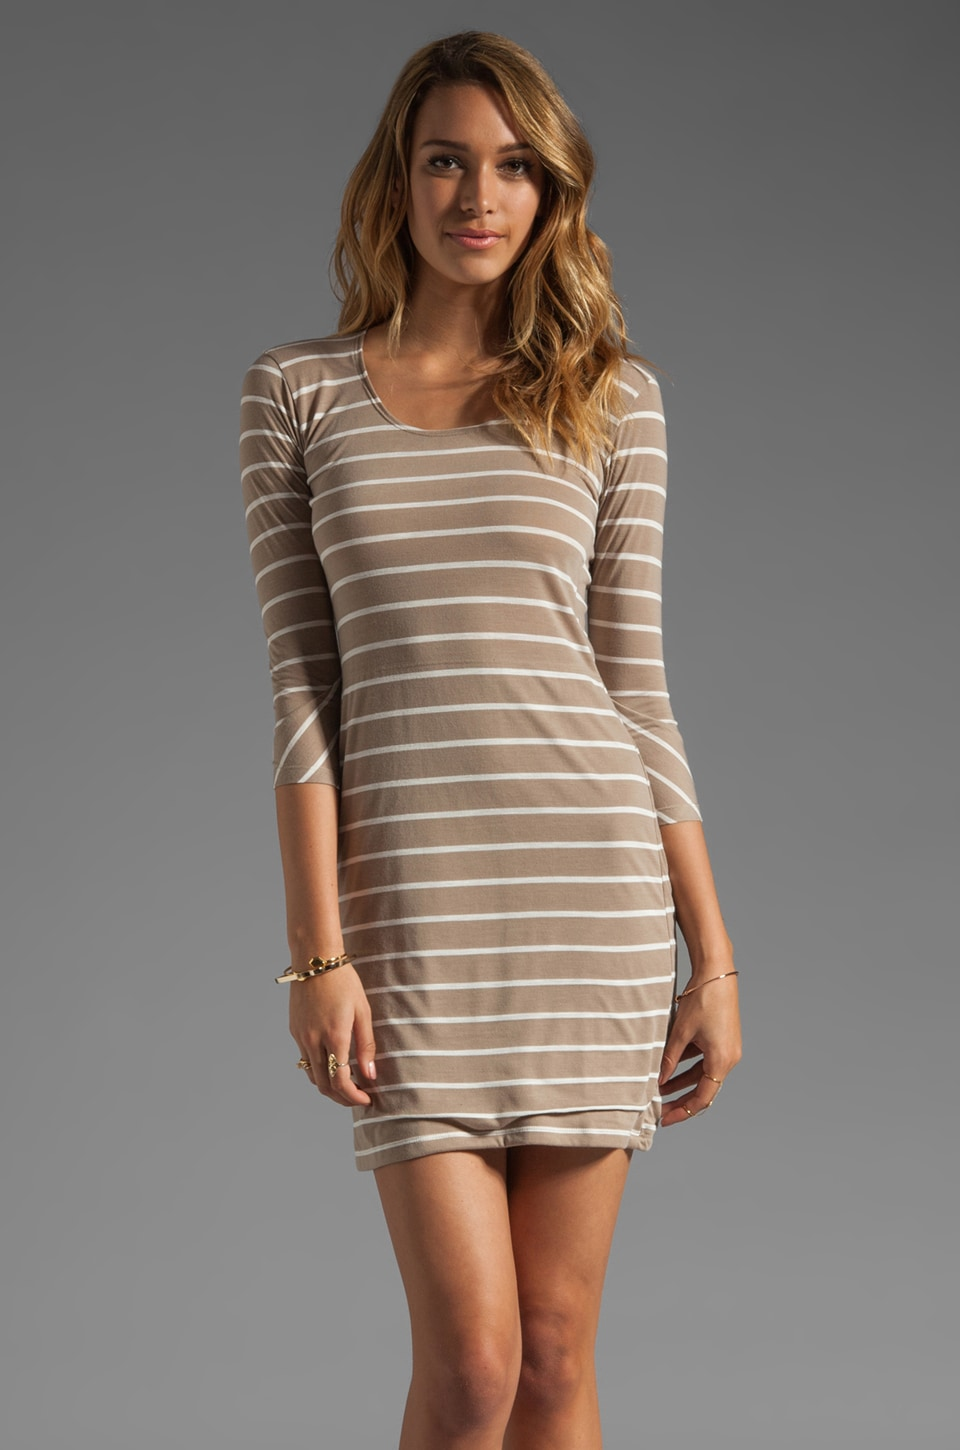 Tylie Stripe Scoop Neck Dress in Sand/White